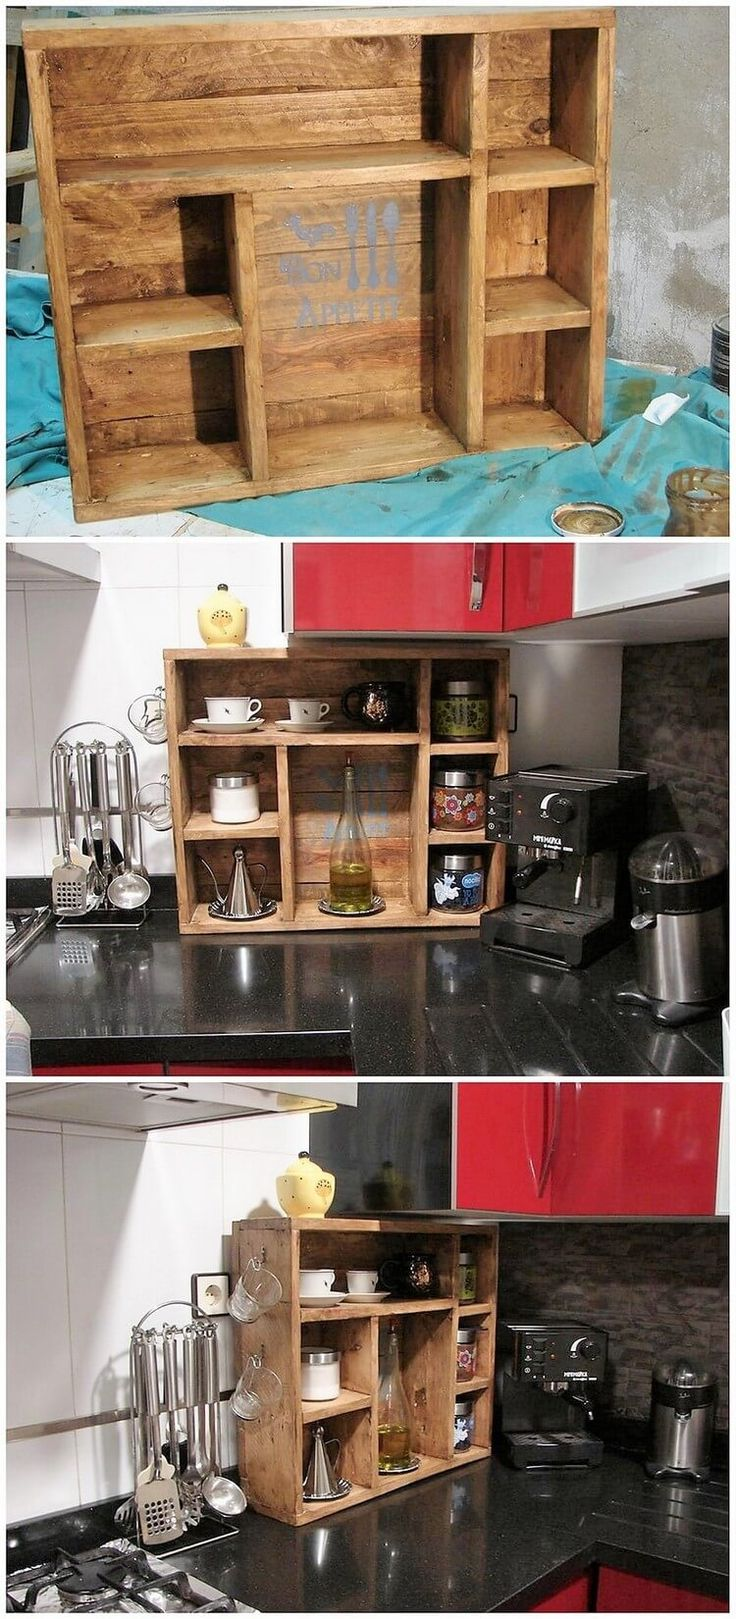 To add some impressive features in your kitchen you are best left with the idea of pallet shelf creative variations. This shelf will be designed as small in size and would be completely covered with the old wooden pallet material. You can beautifully design it by adding some more creative ideas coming all the way in your mind.